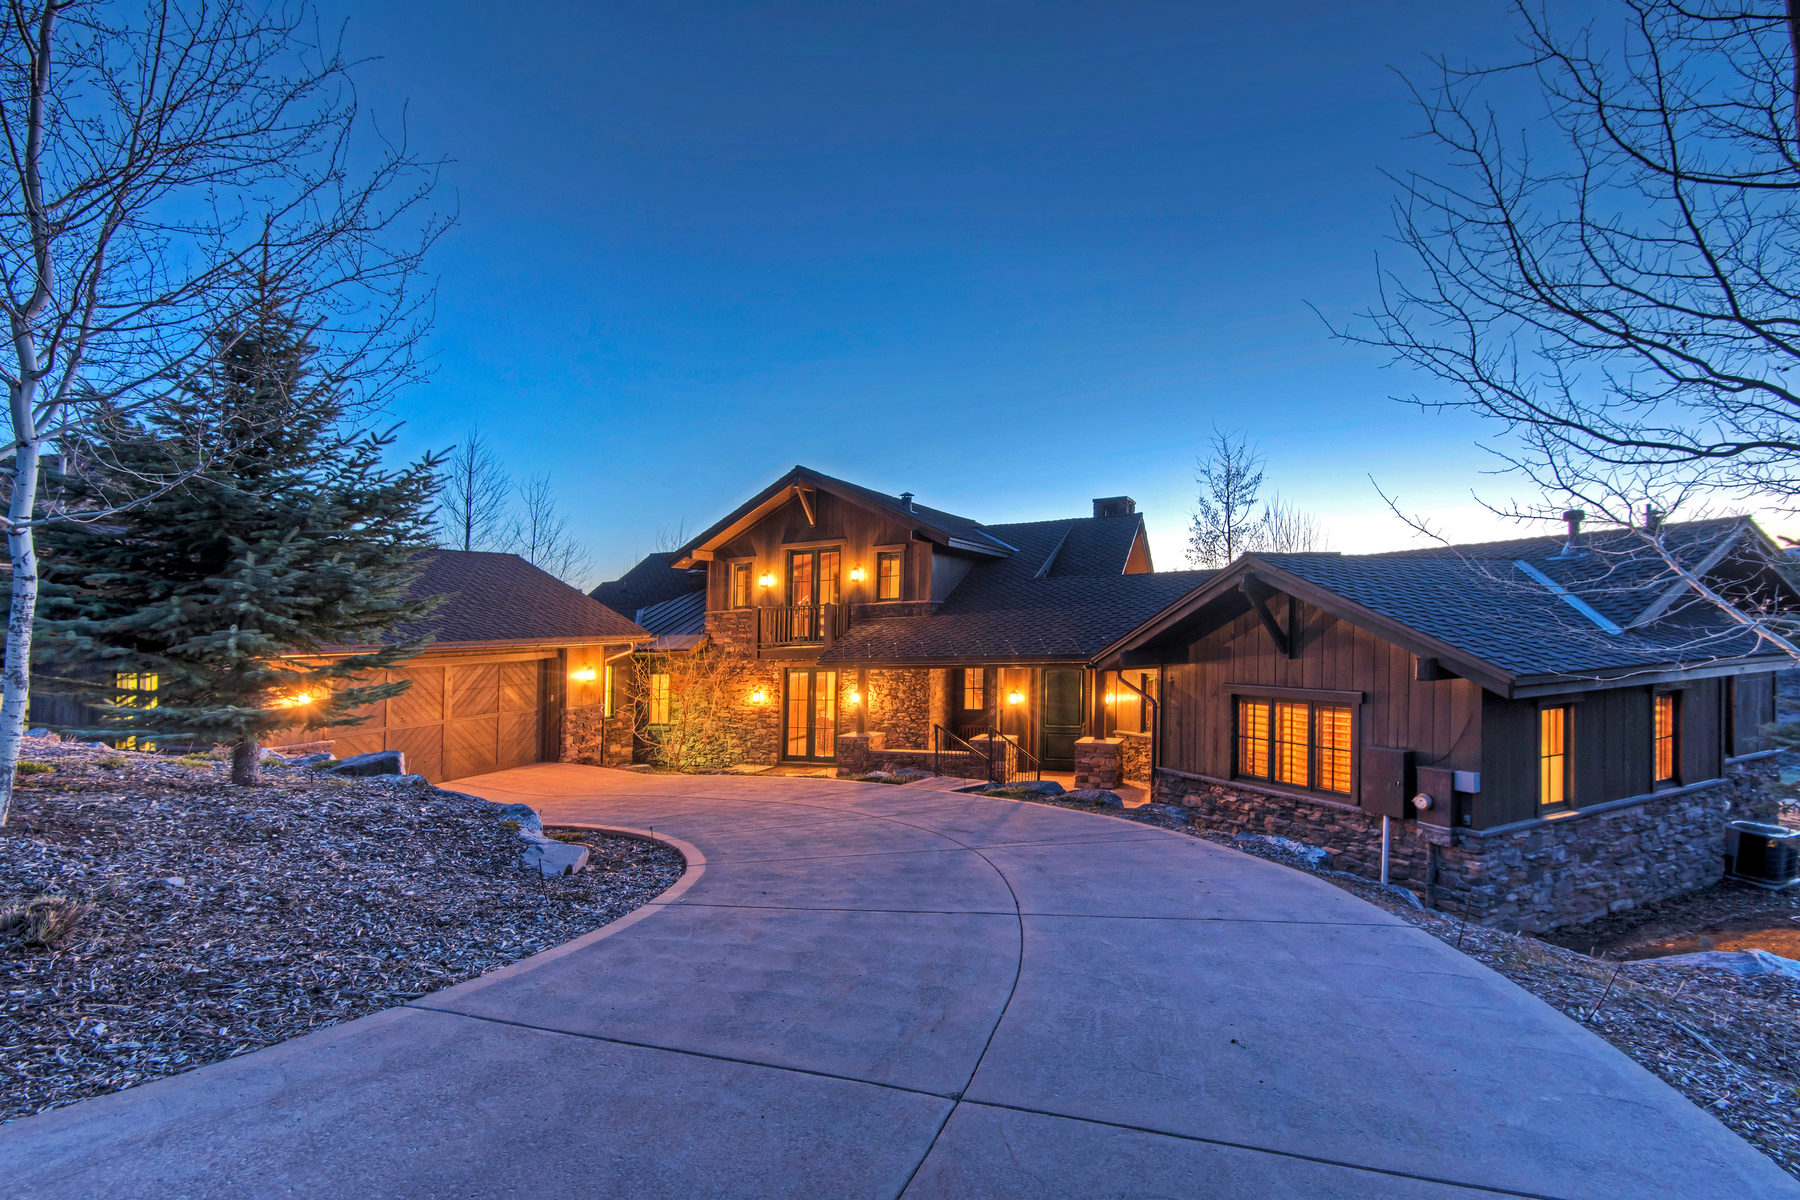 Casa Unifamiliar por un Venta en Premier Golf Club Cabin With Spectacular Views 8699 Ranch Club Court Park City, Utah, 84098 Estados Unidos